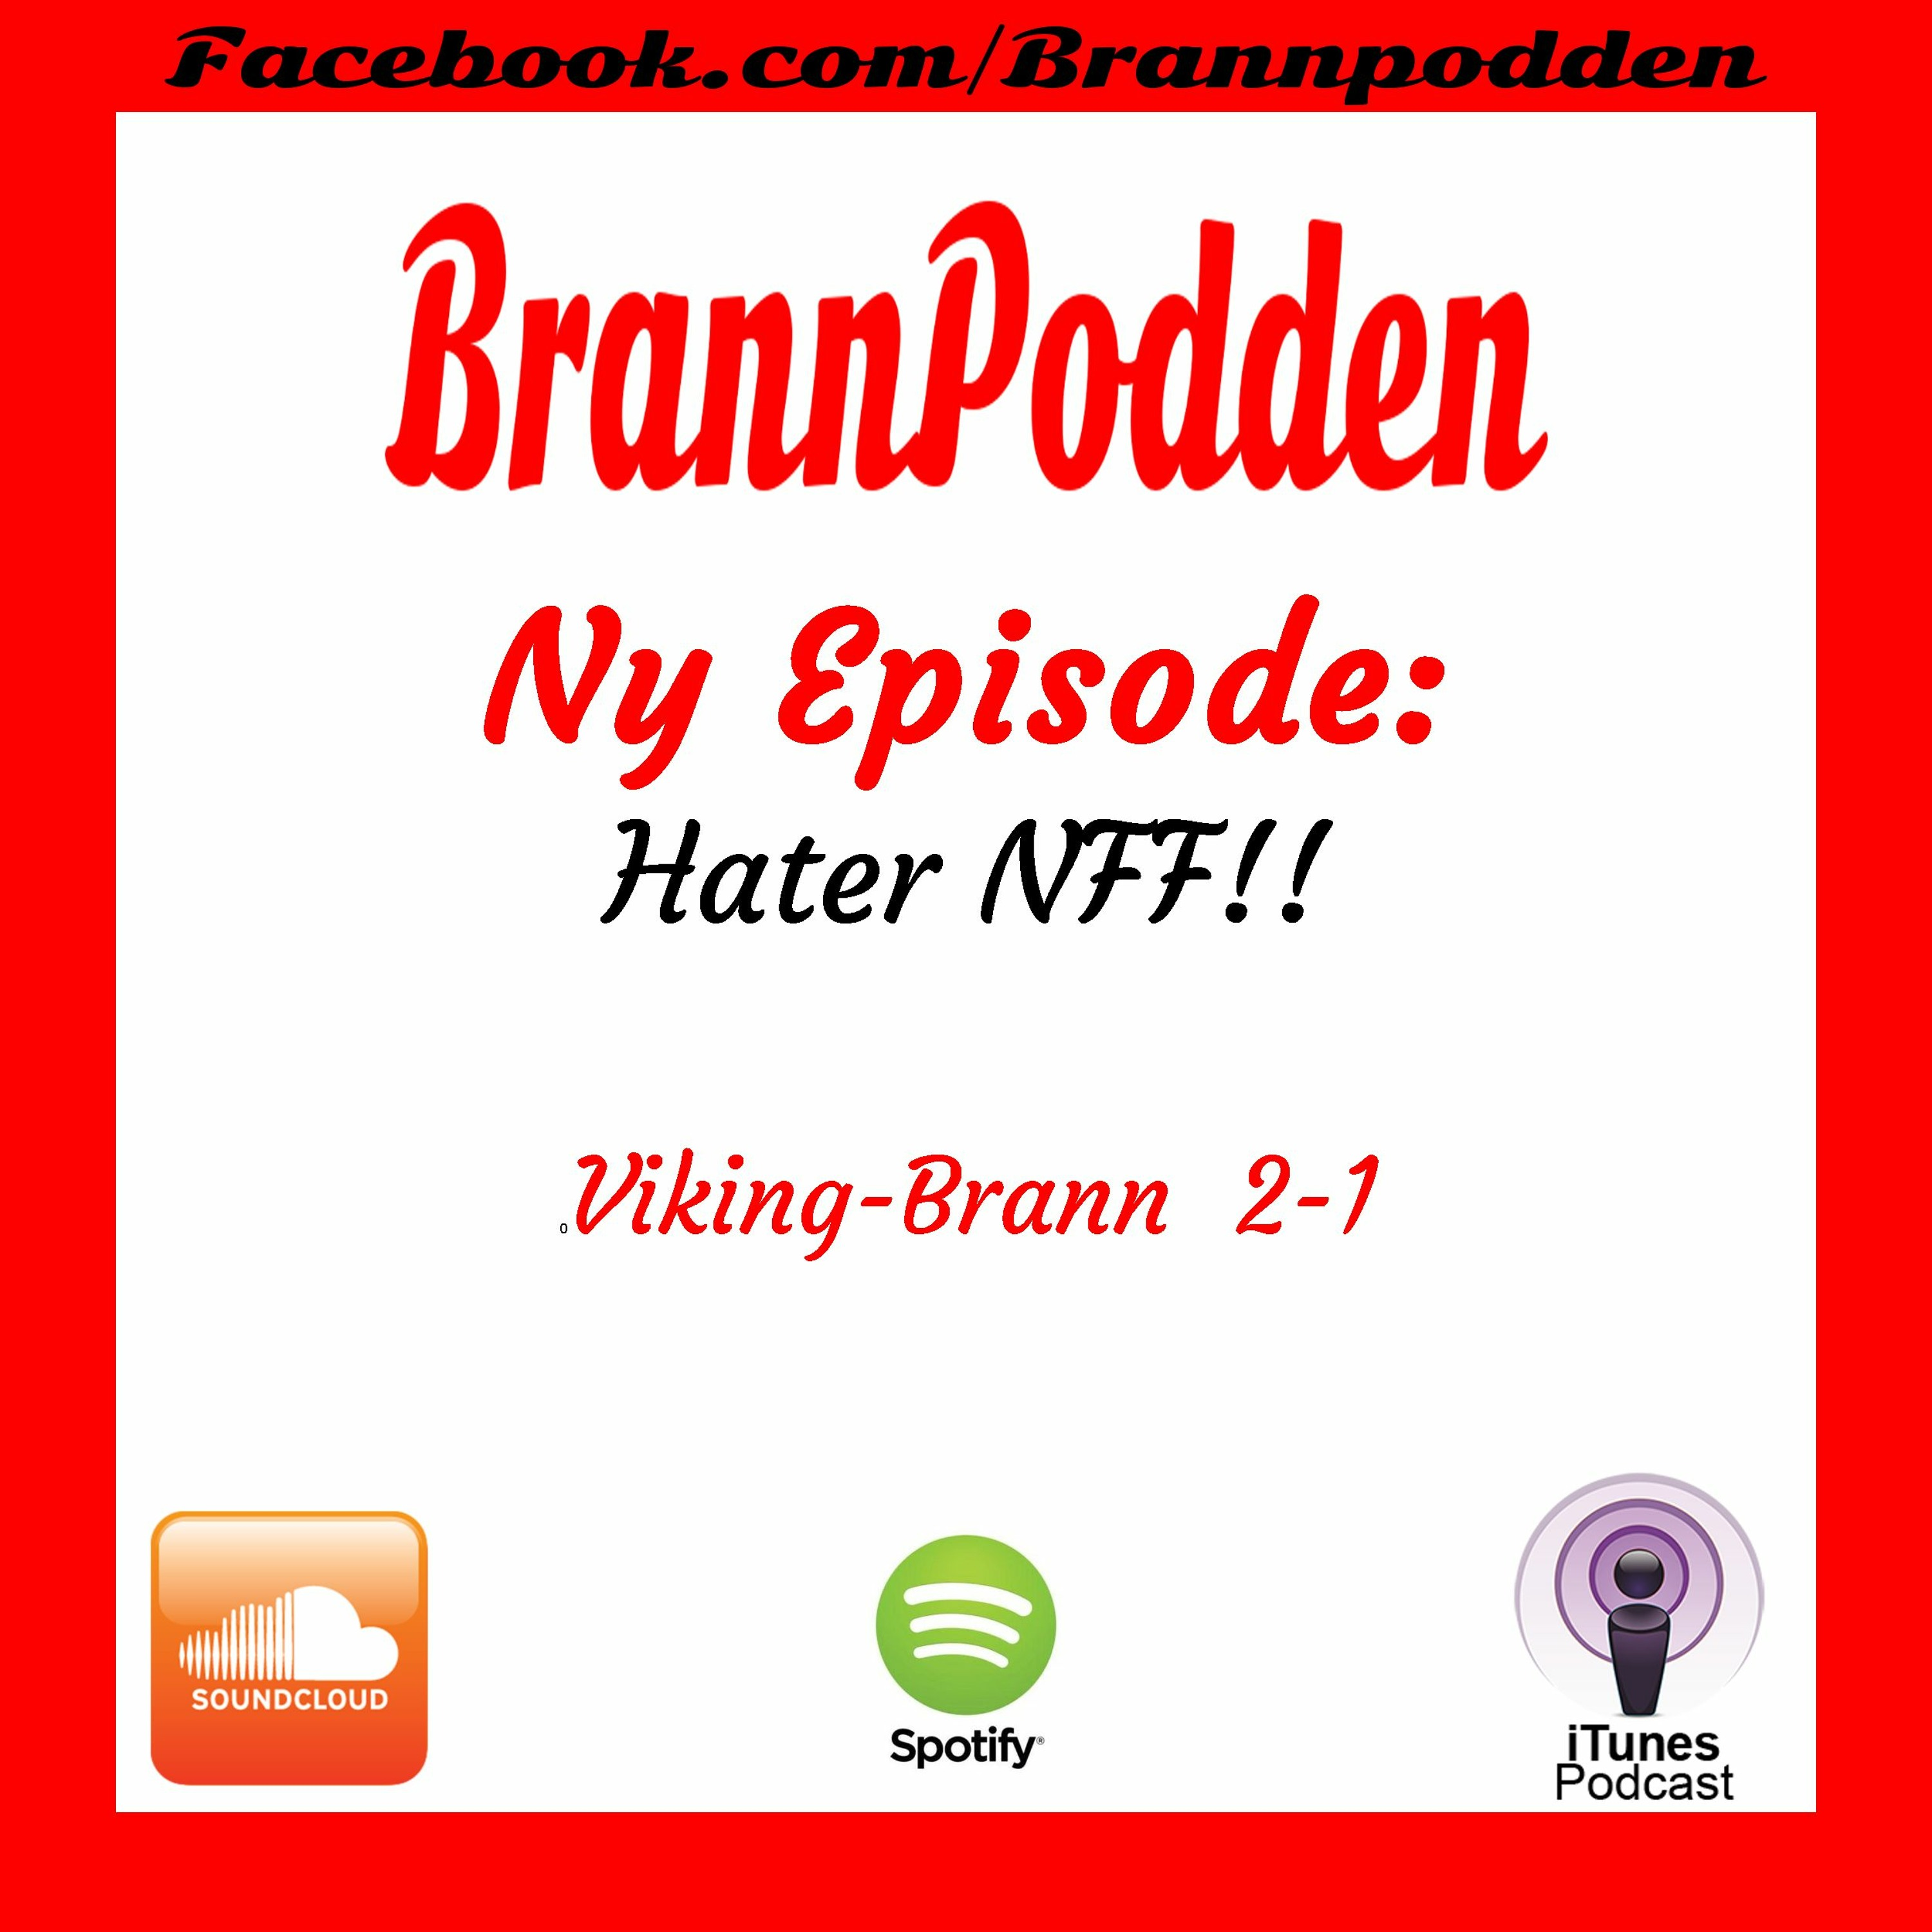 Hater NFF!